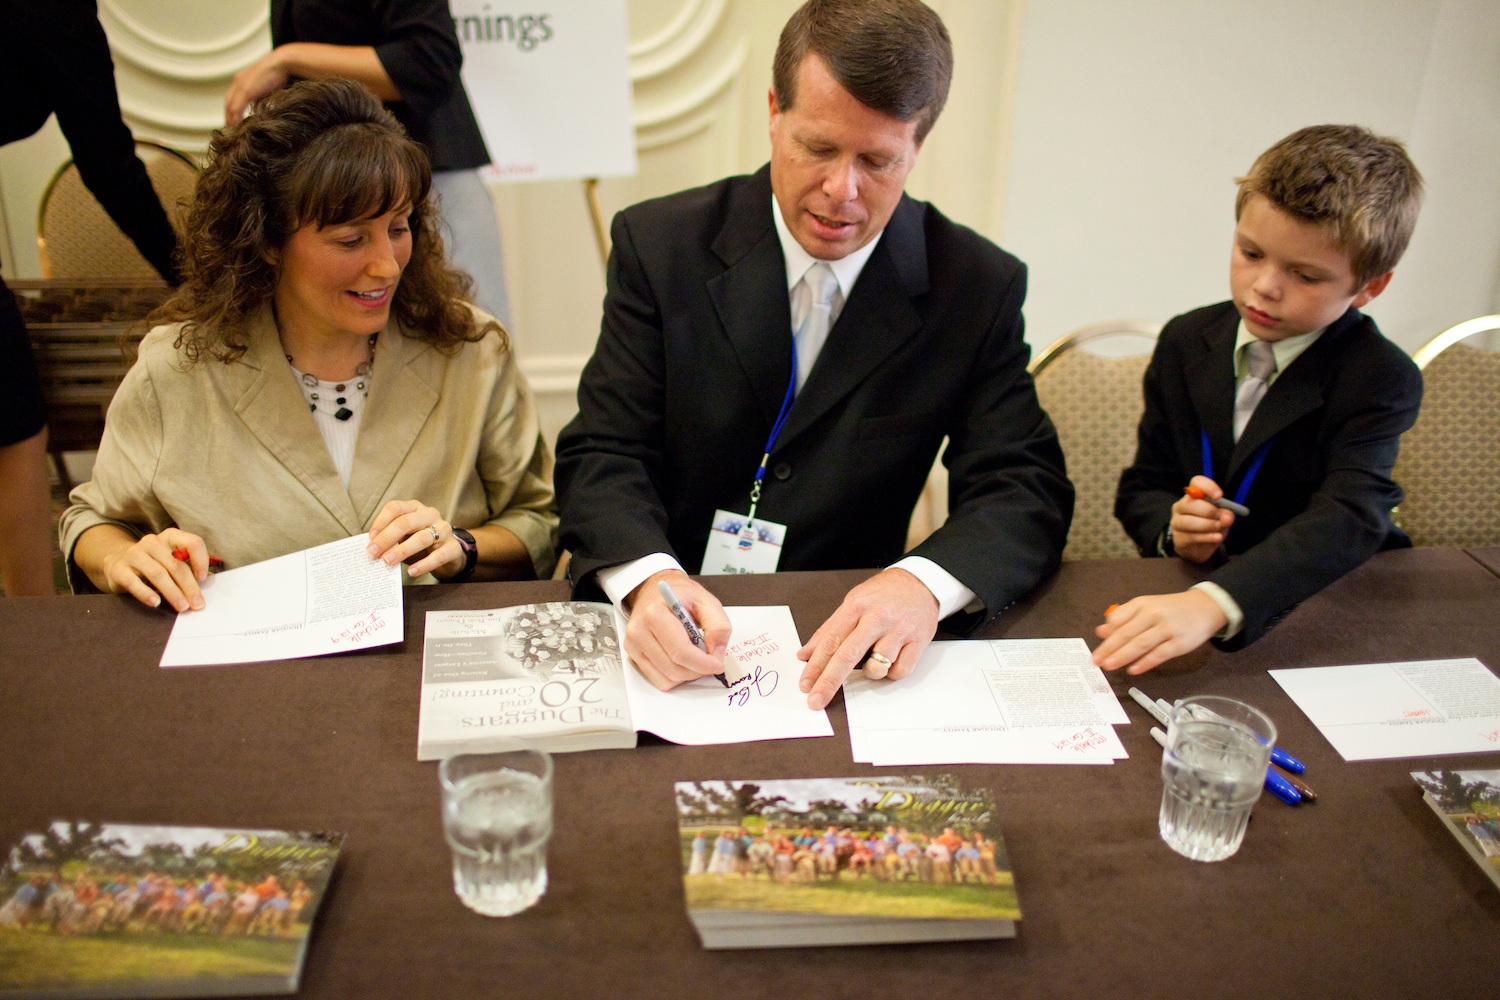 """Jim Bob & Michelle Duggar Of TLC's """"19 Kids and Counting"""" Book Signing"""